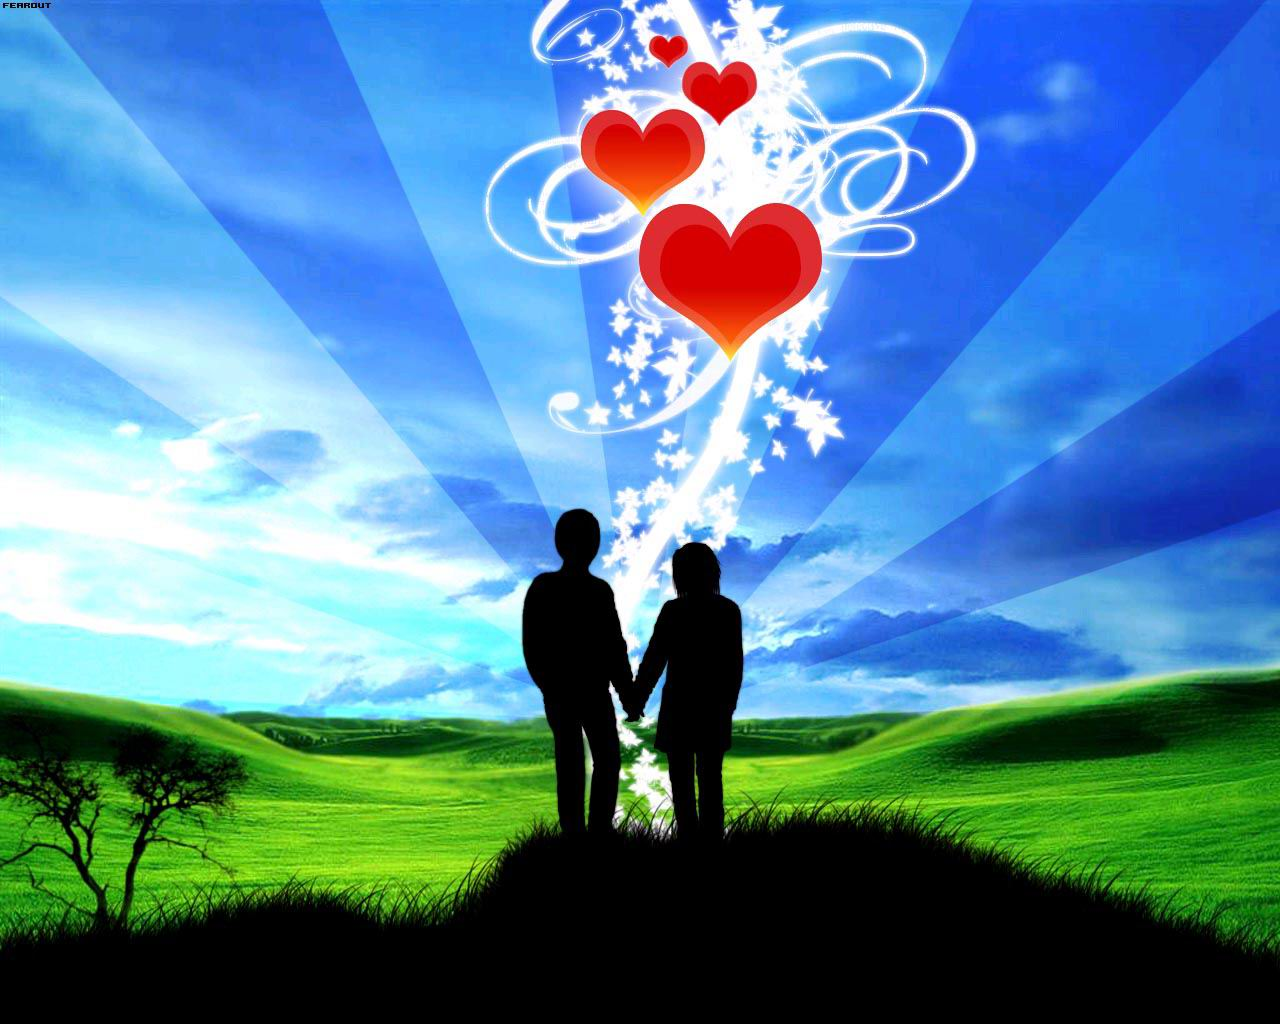 Love Wallpaper For New : Love is Life: Love wallpapers new love wallpapers latest love wallpapers 2012 love hd ...